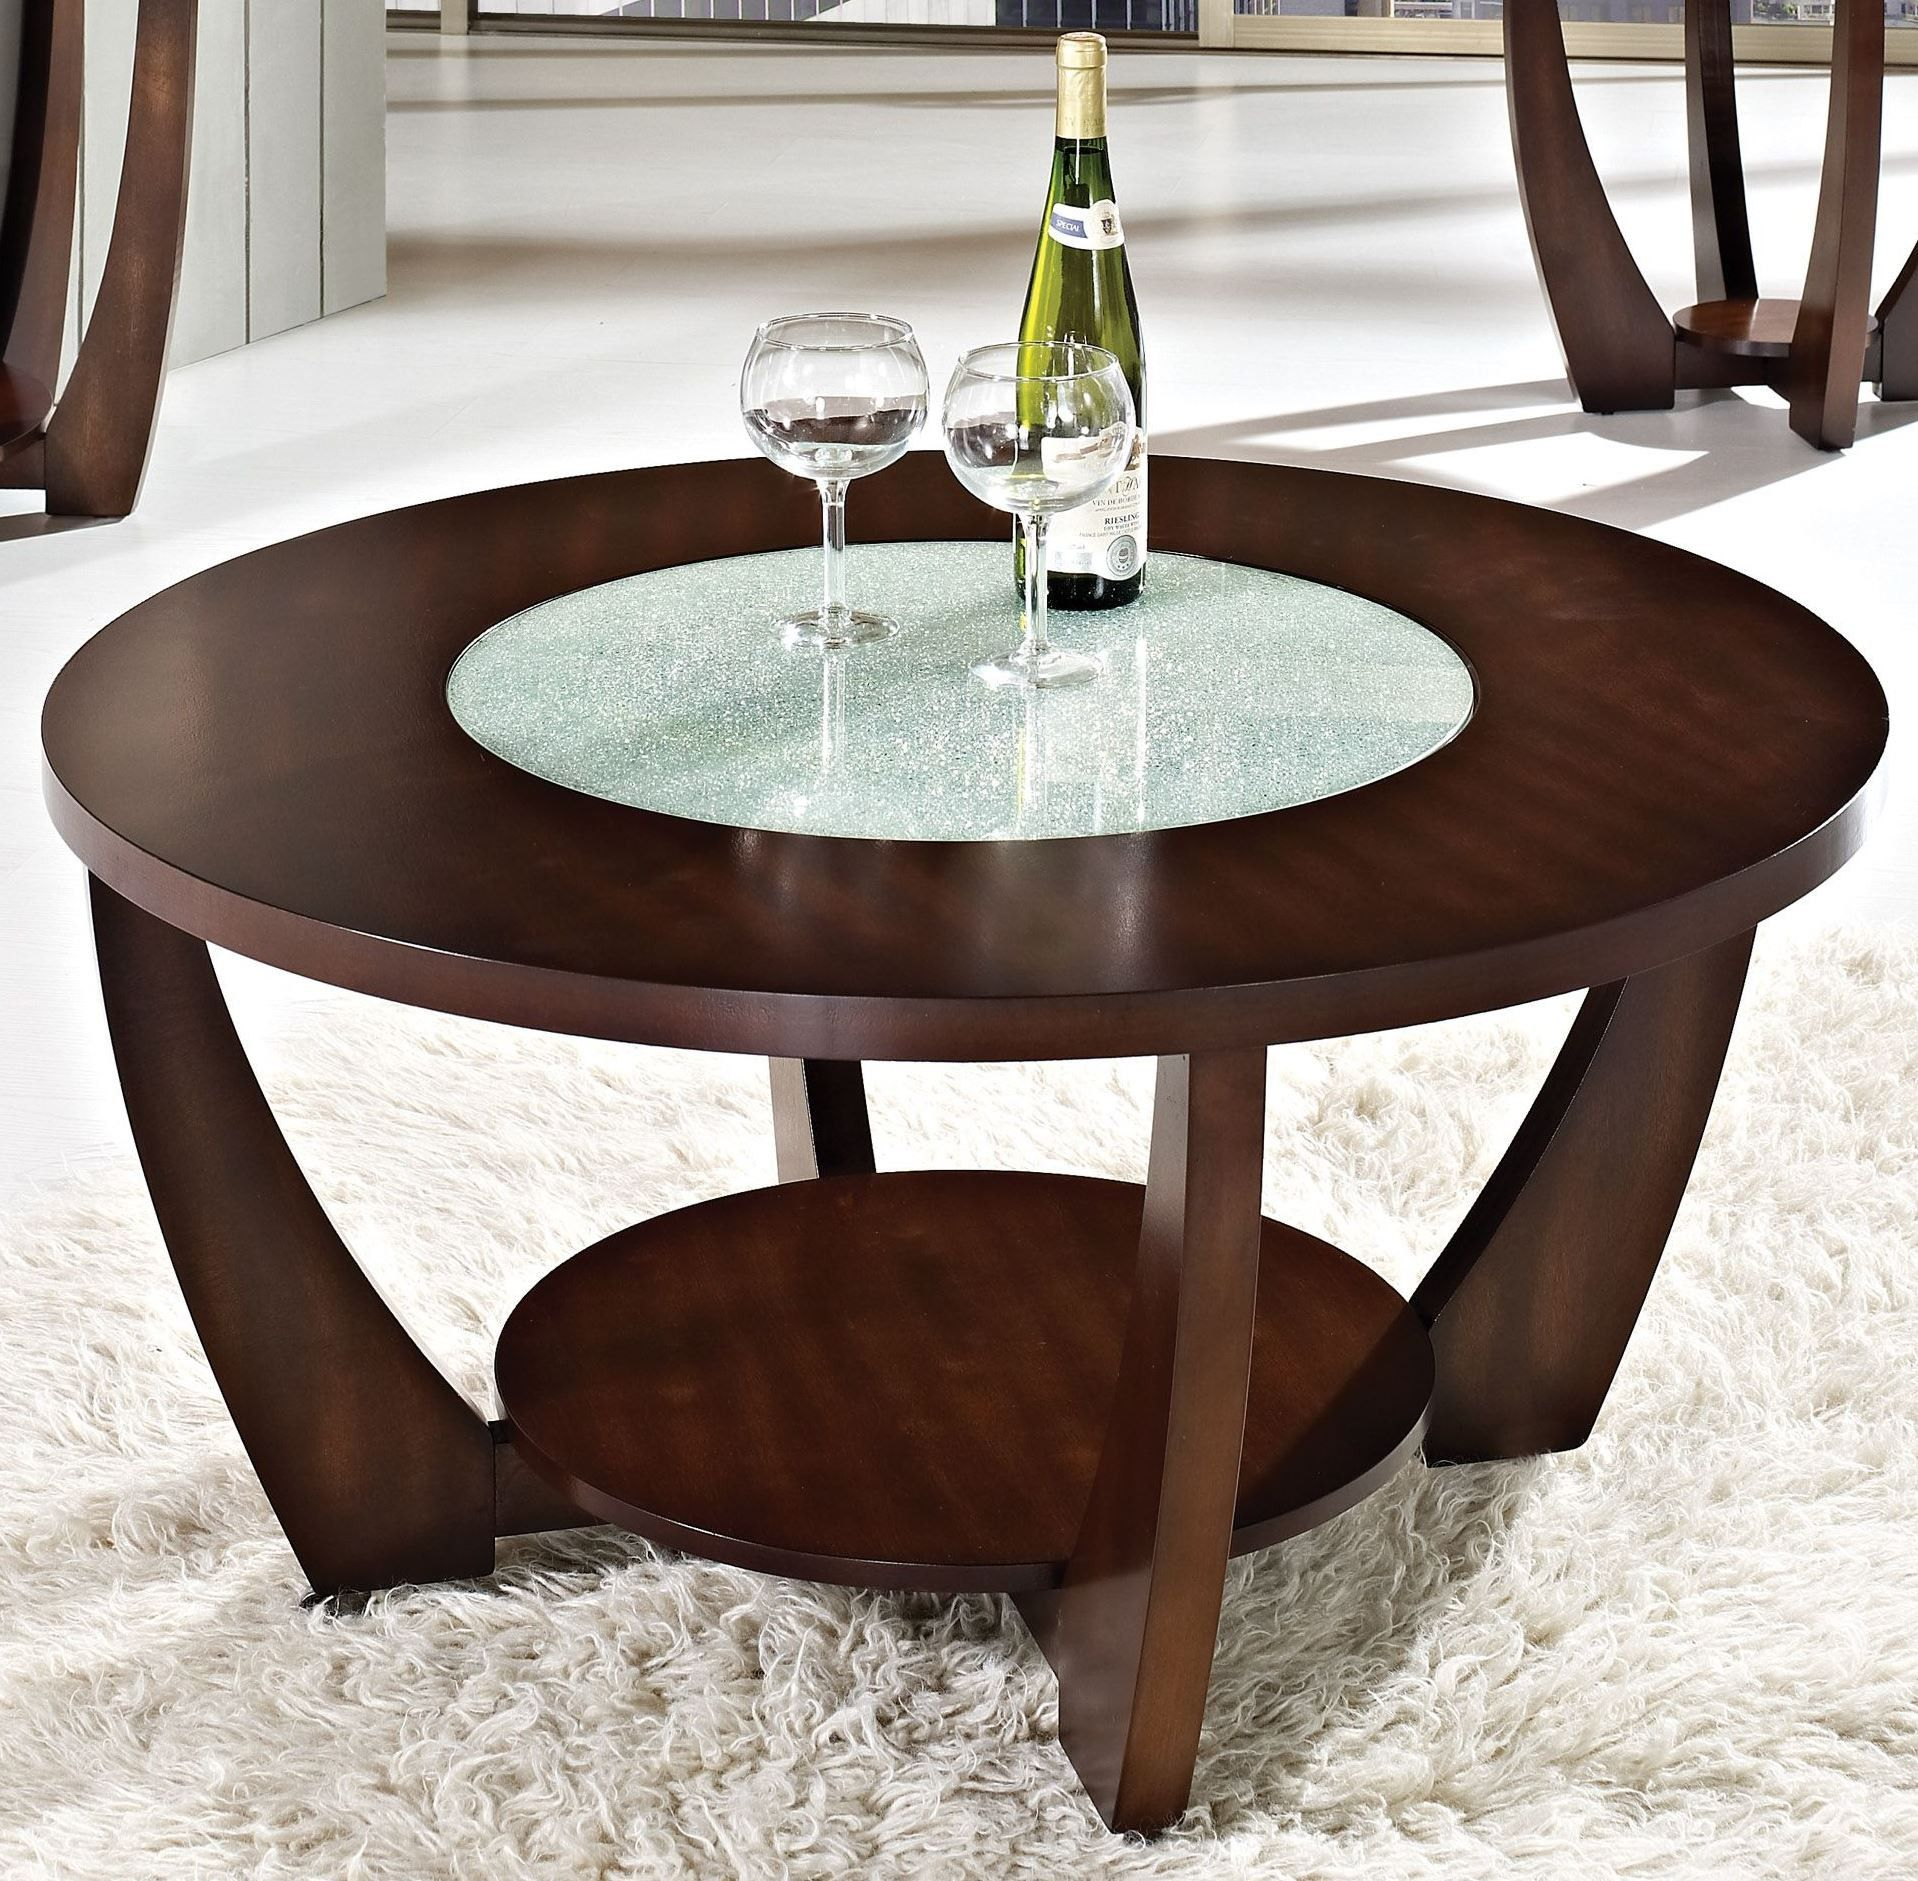 Rafael Merlot Cherry Cocktail Table With Casters Cherry Wood Coffee Table Round Coffee Table Modern Coffee Table Wood [ 1881 x 1918 Pixel ]